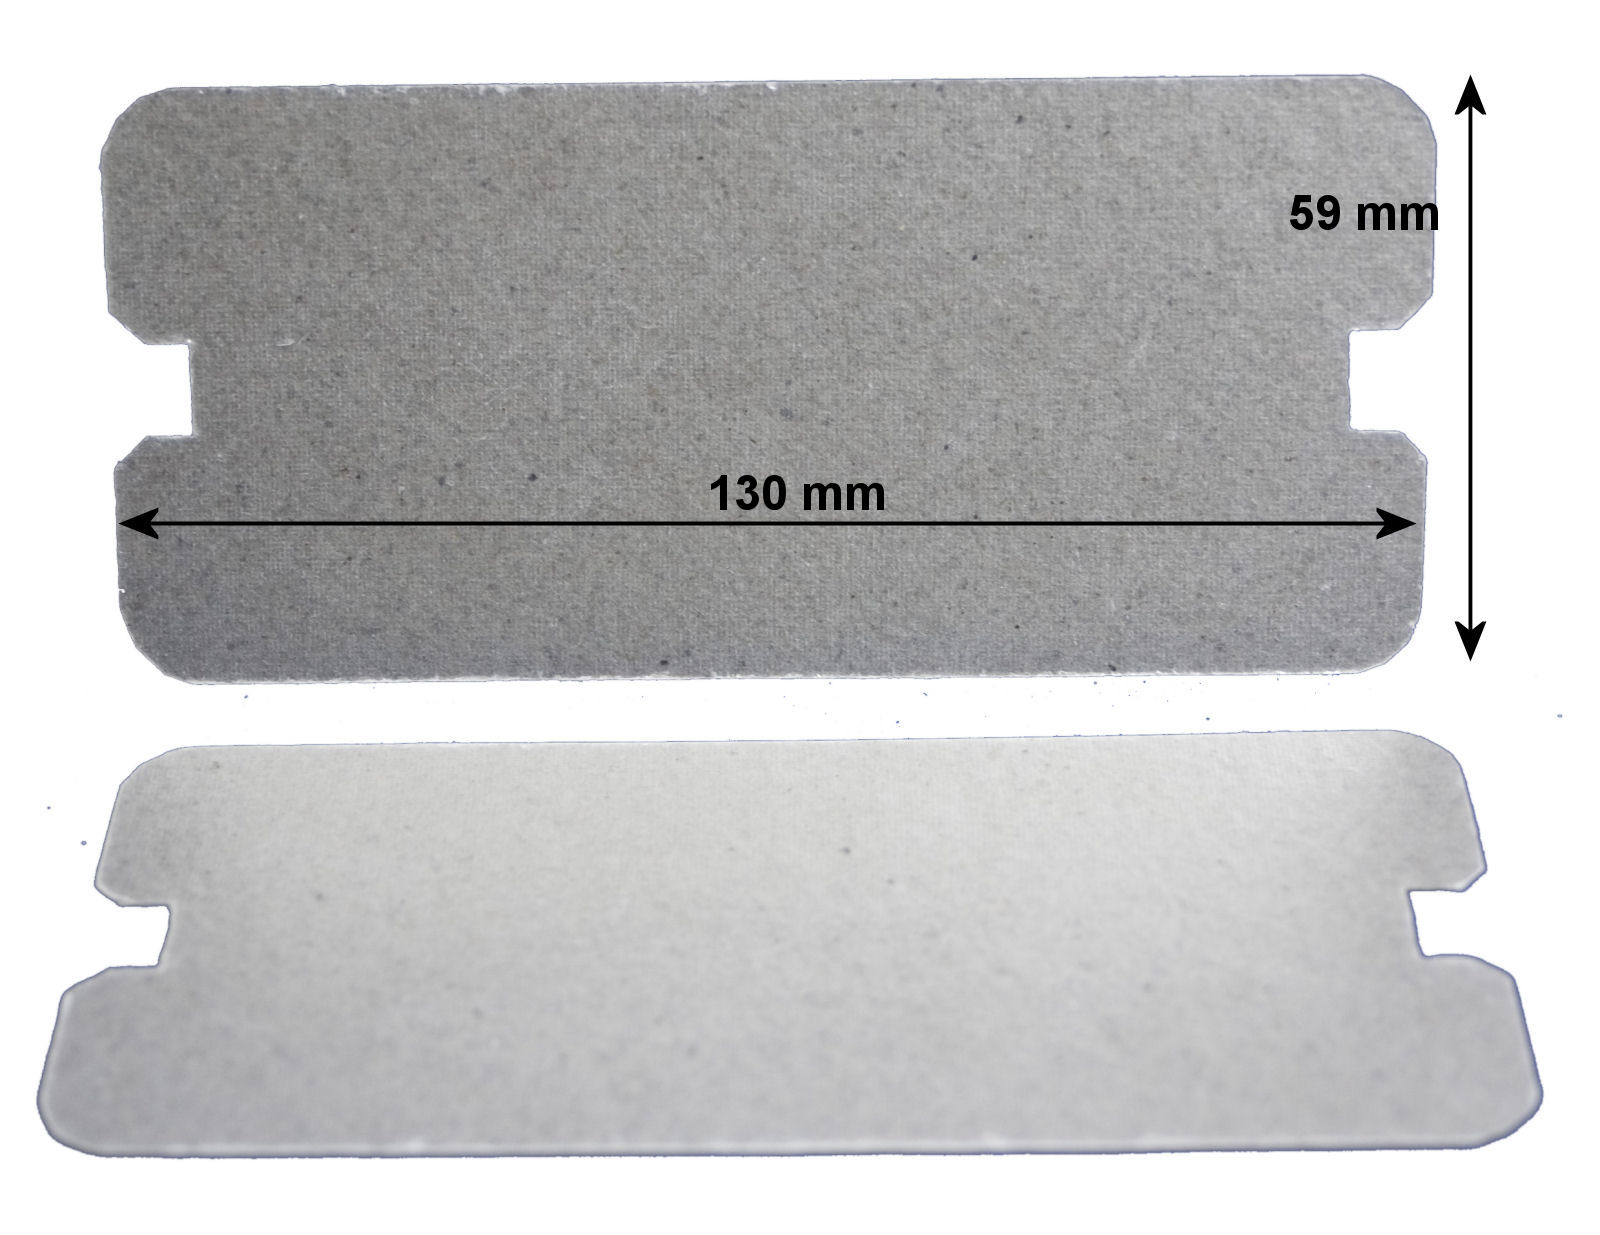 Pack of 2 waveguide covers for Sharp microwave ovens - PCOVPA361WREZ